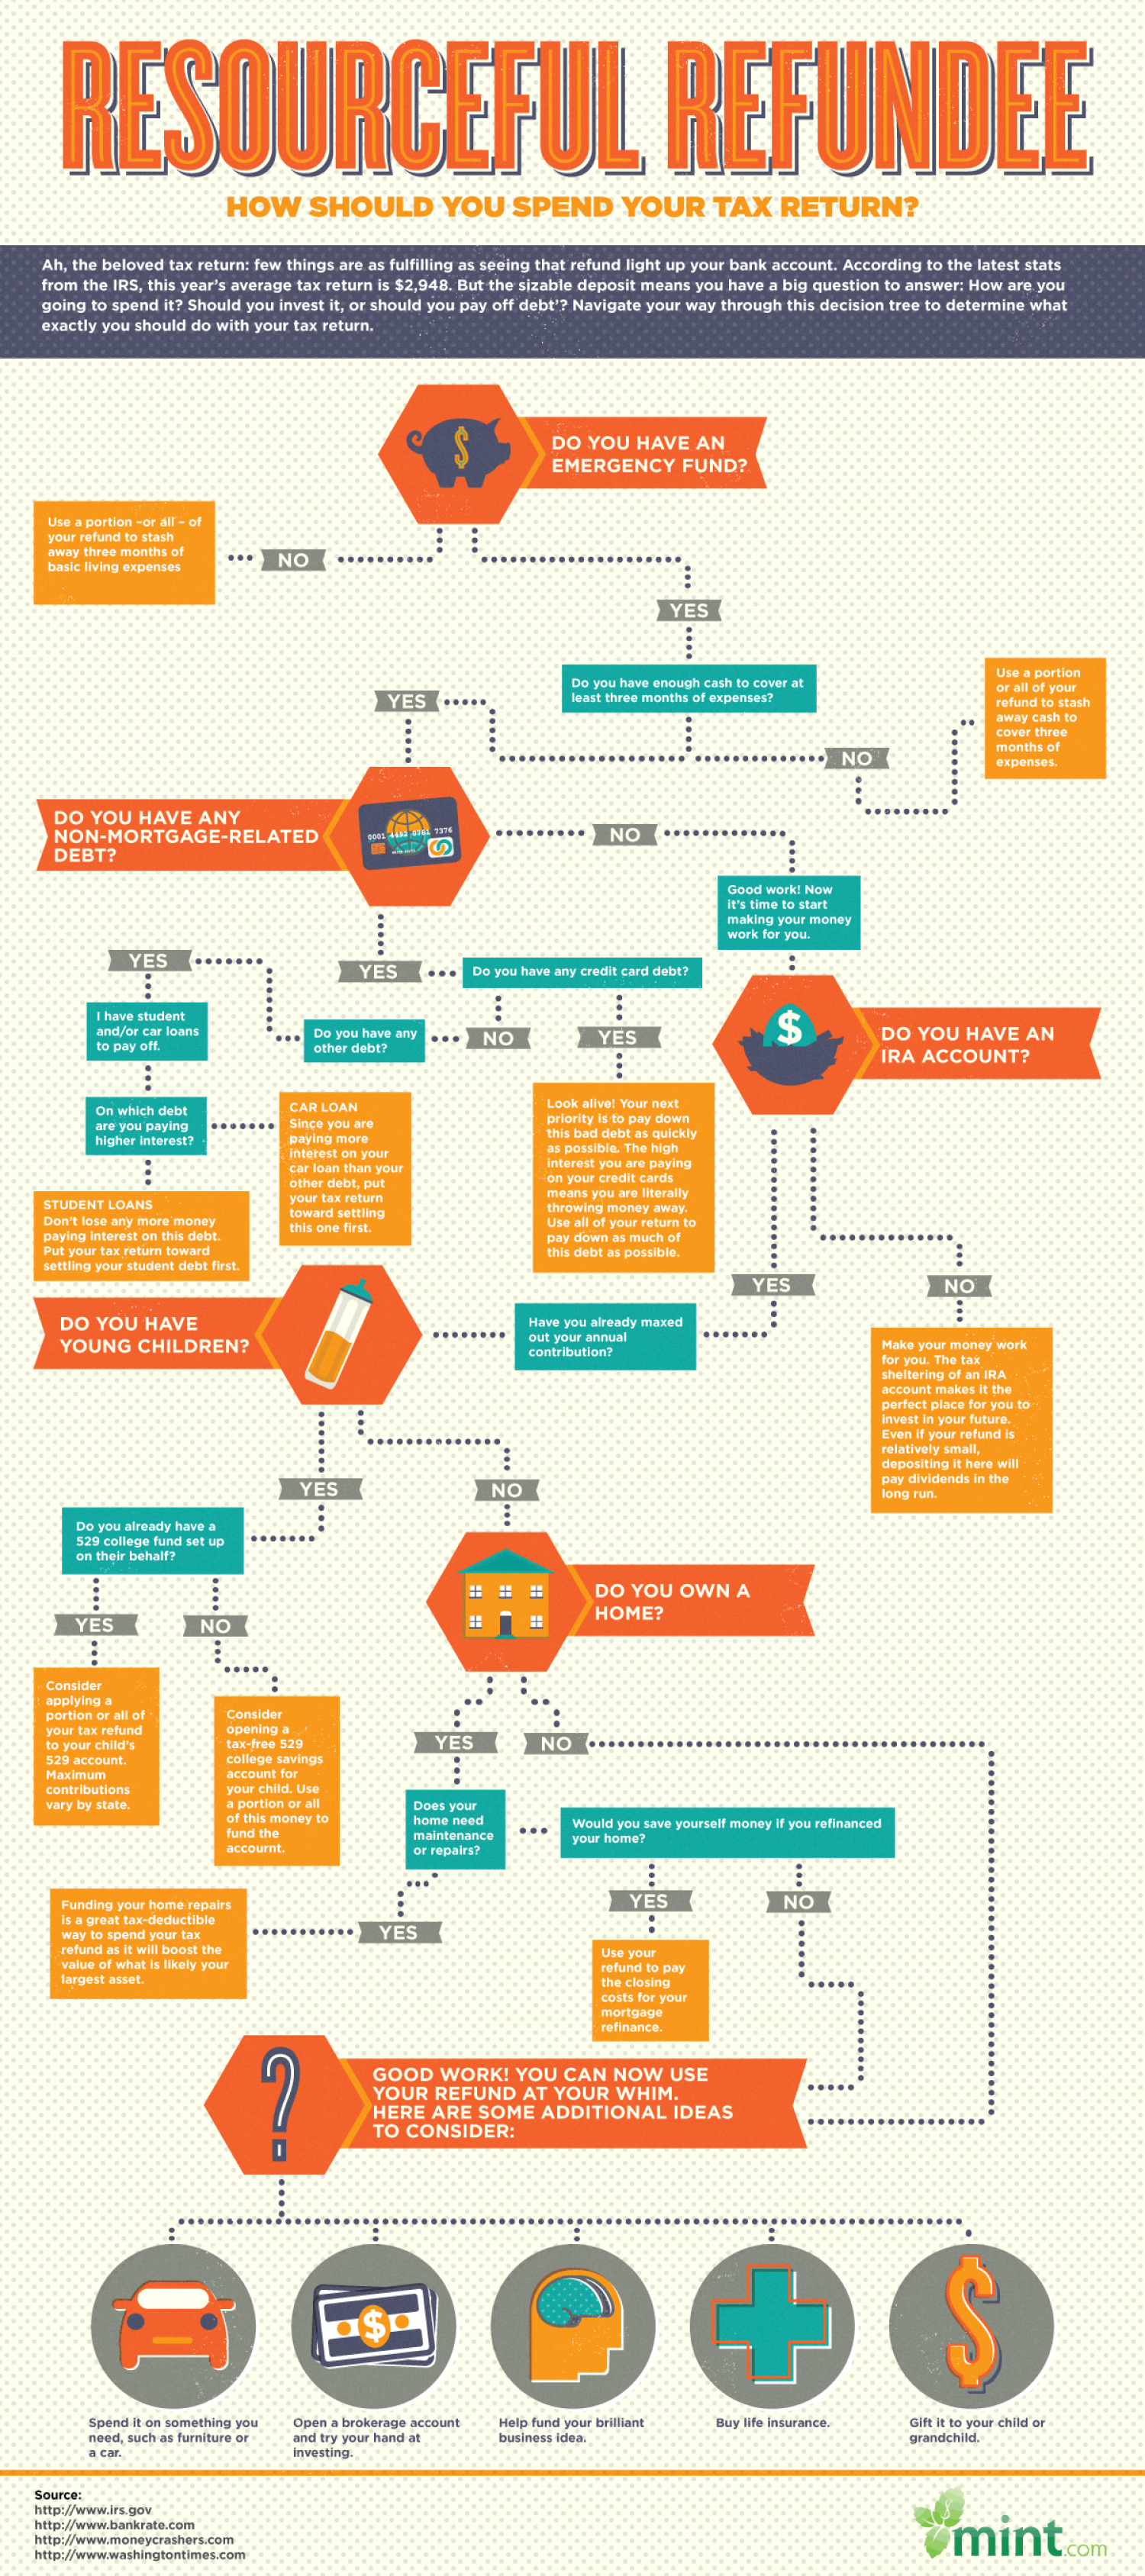 The Best Ways to Spend Your Tax Refund Infographic